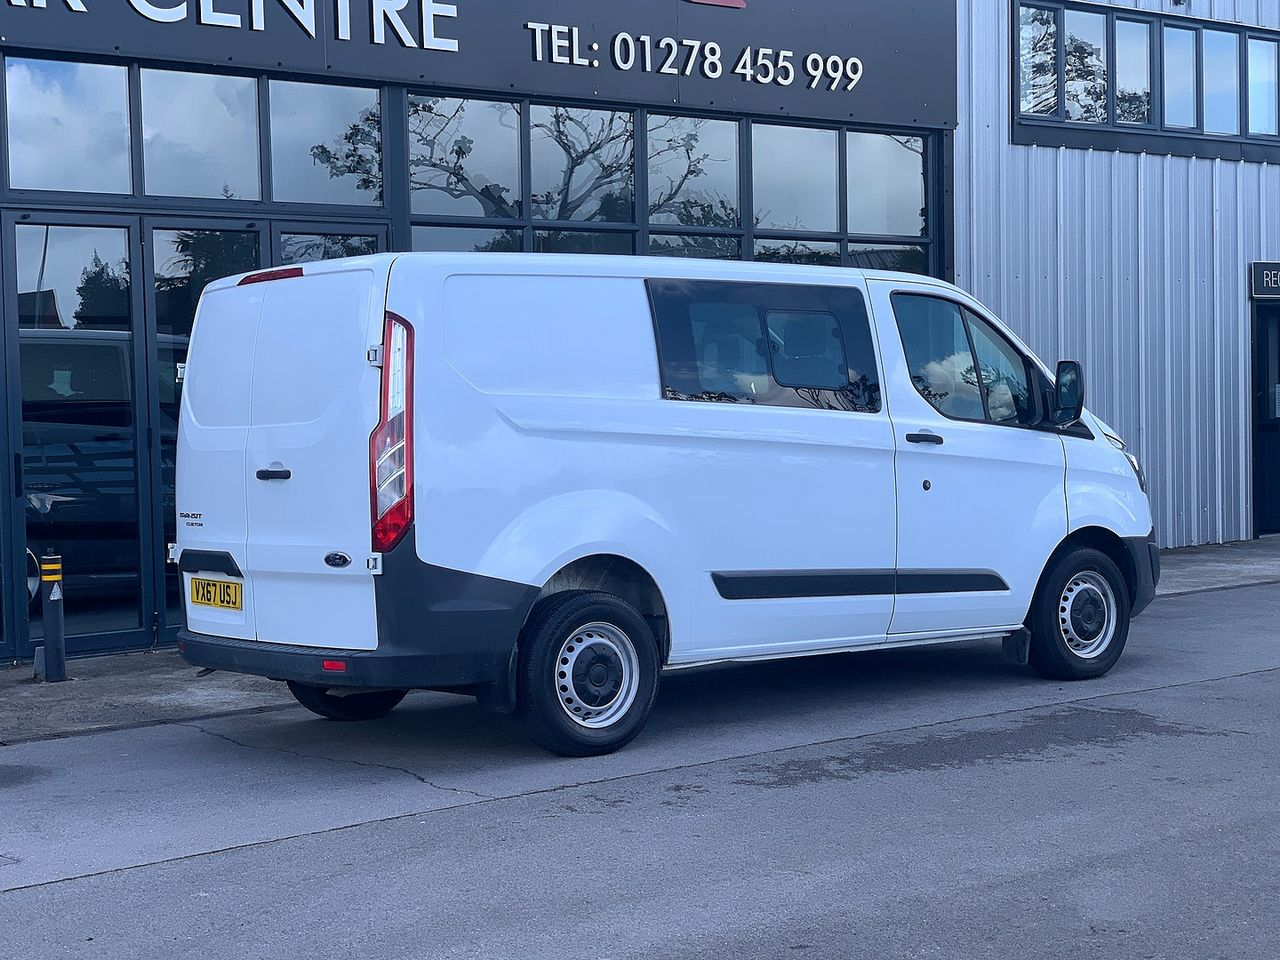 2017 FORD Transit Custom Crew Cab 2.0TD 105PS 270 FWD L1 - Picture 3 of 11